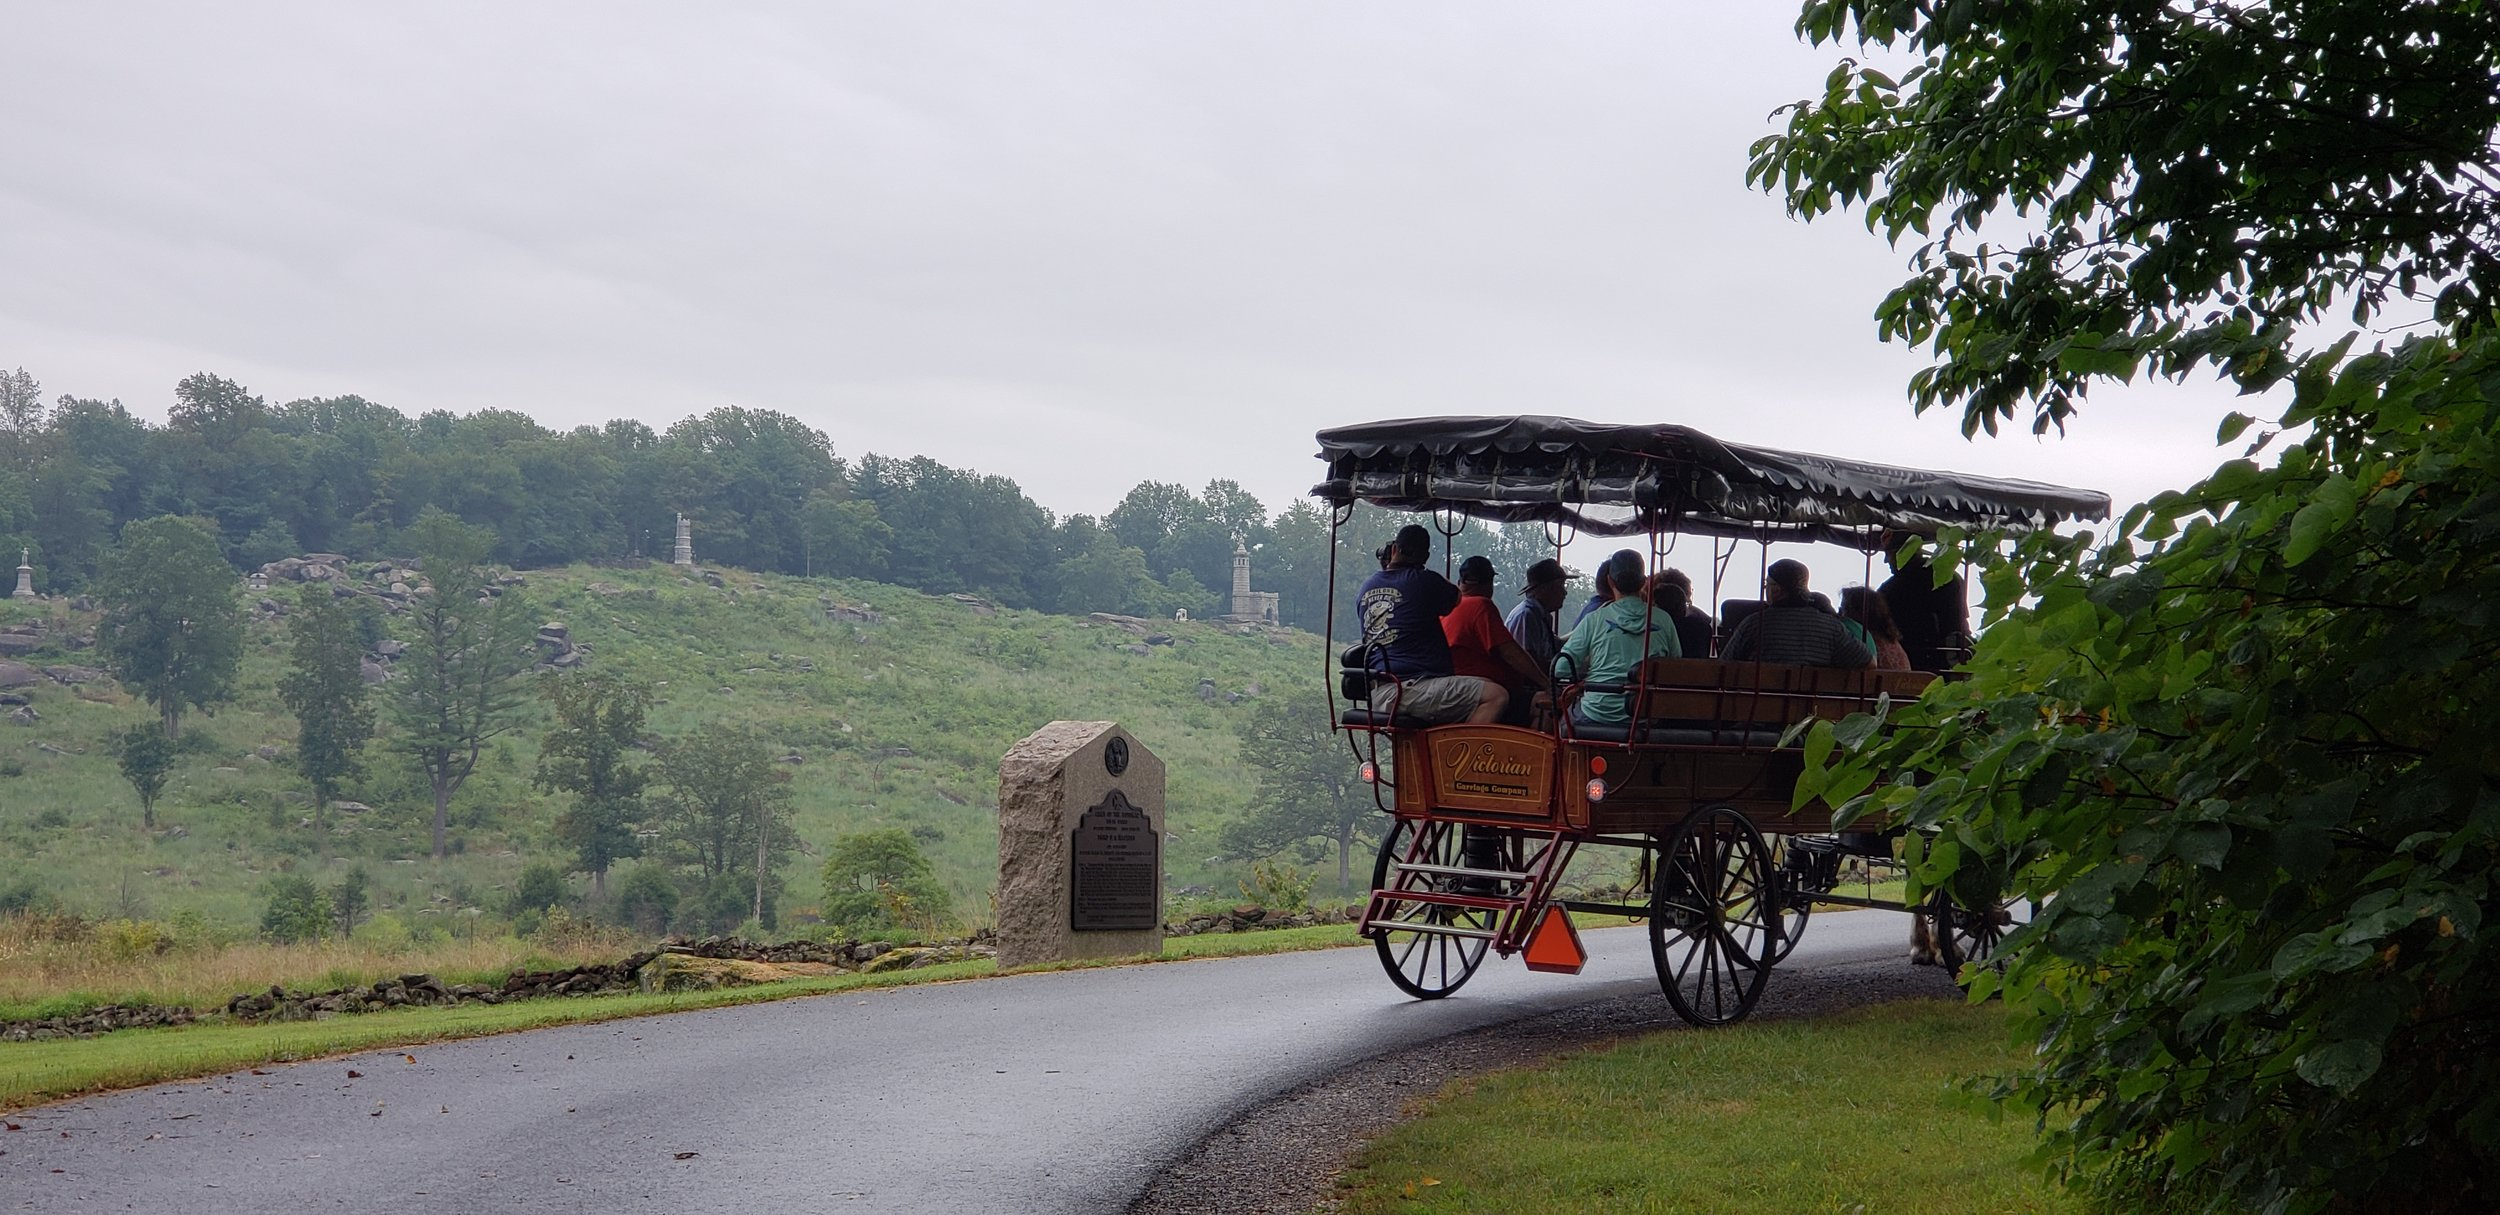 View Little Round Top from a horse-drawn carriage